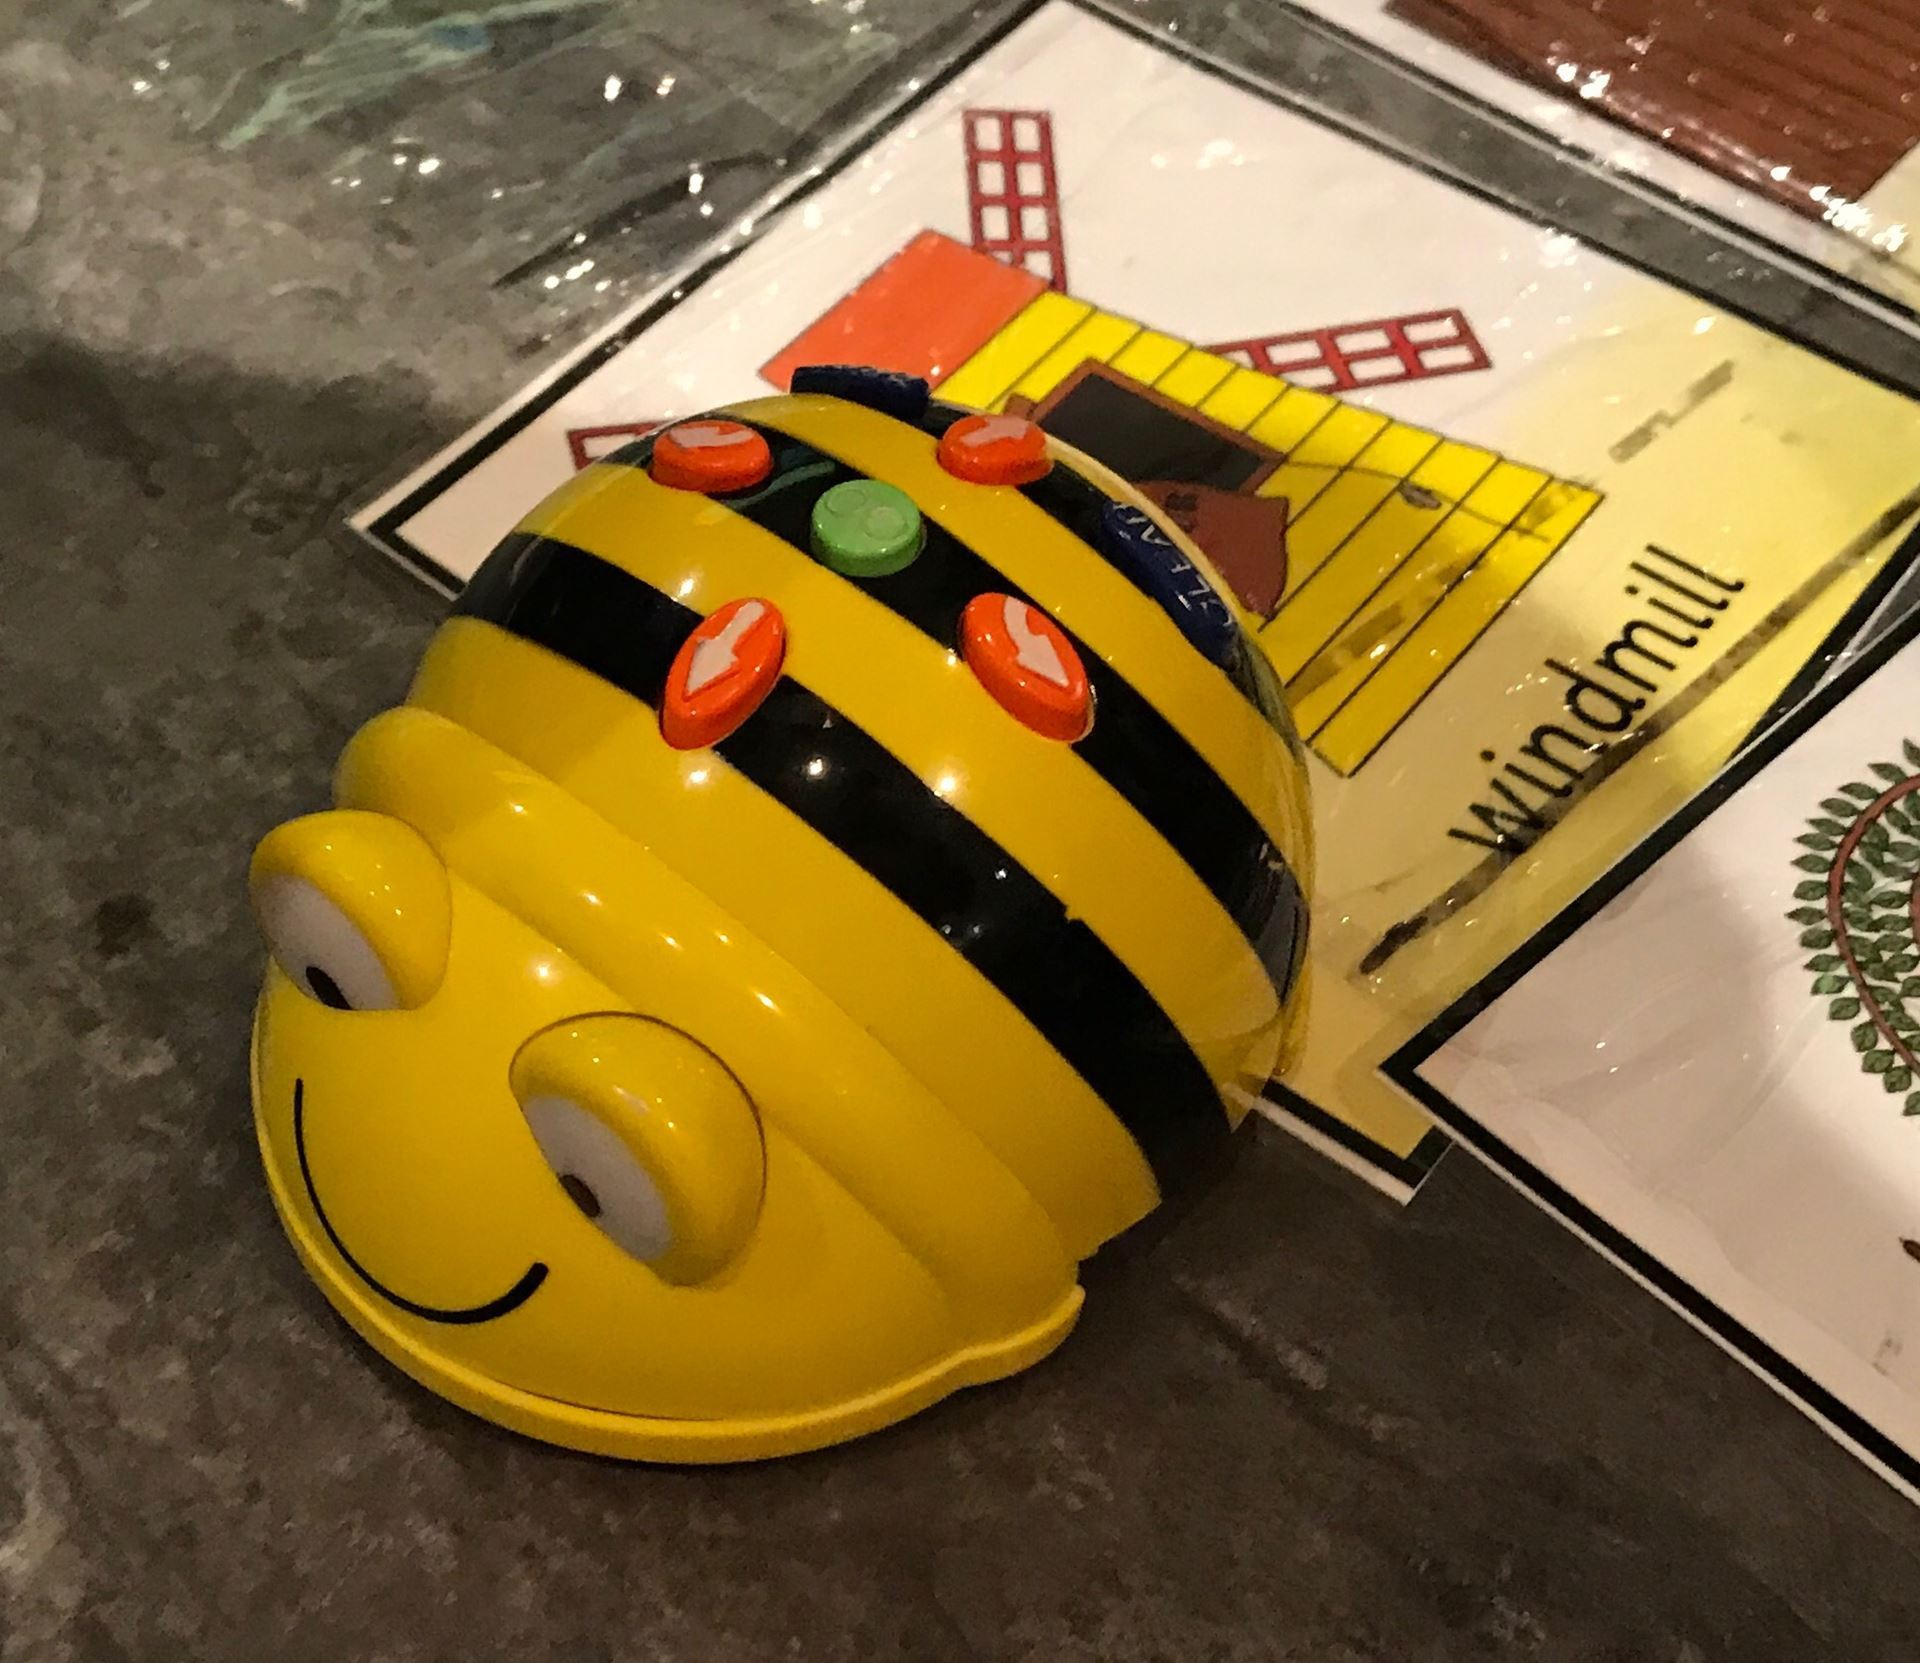 A Bee Bot sits on an activity tile